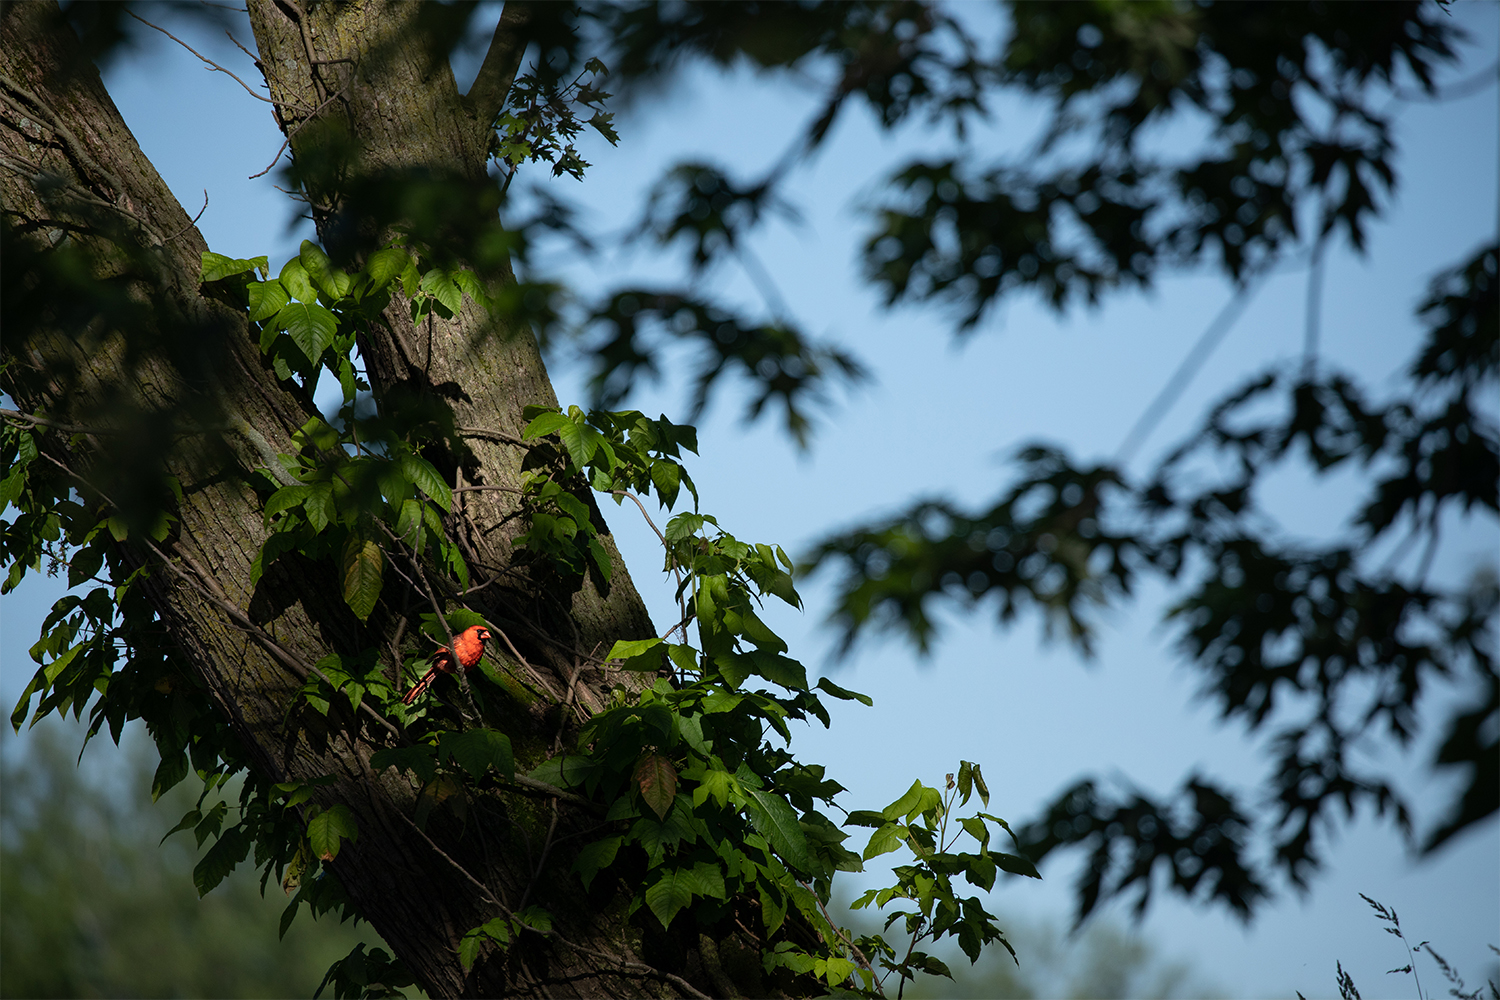 A+cardinal+perches+in+a+tree+in+a+tributary+of+the+Iowa+River+south+of+Riverside%2C+Iowa+on+June+13%2C+2019.+